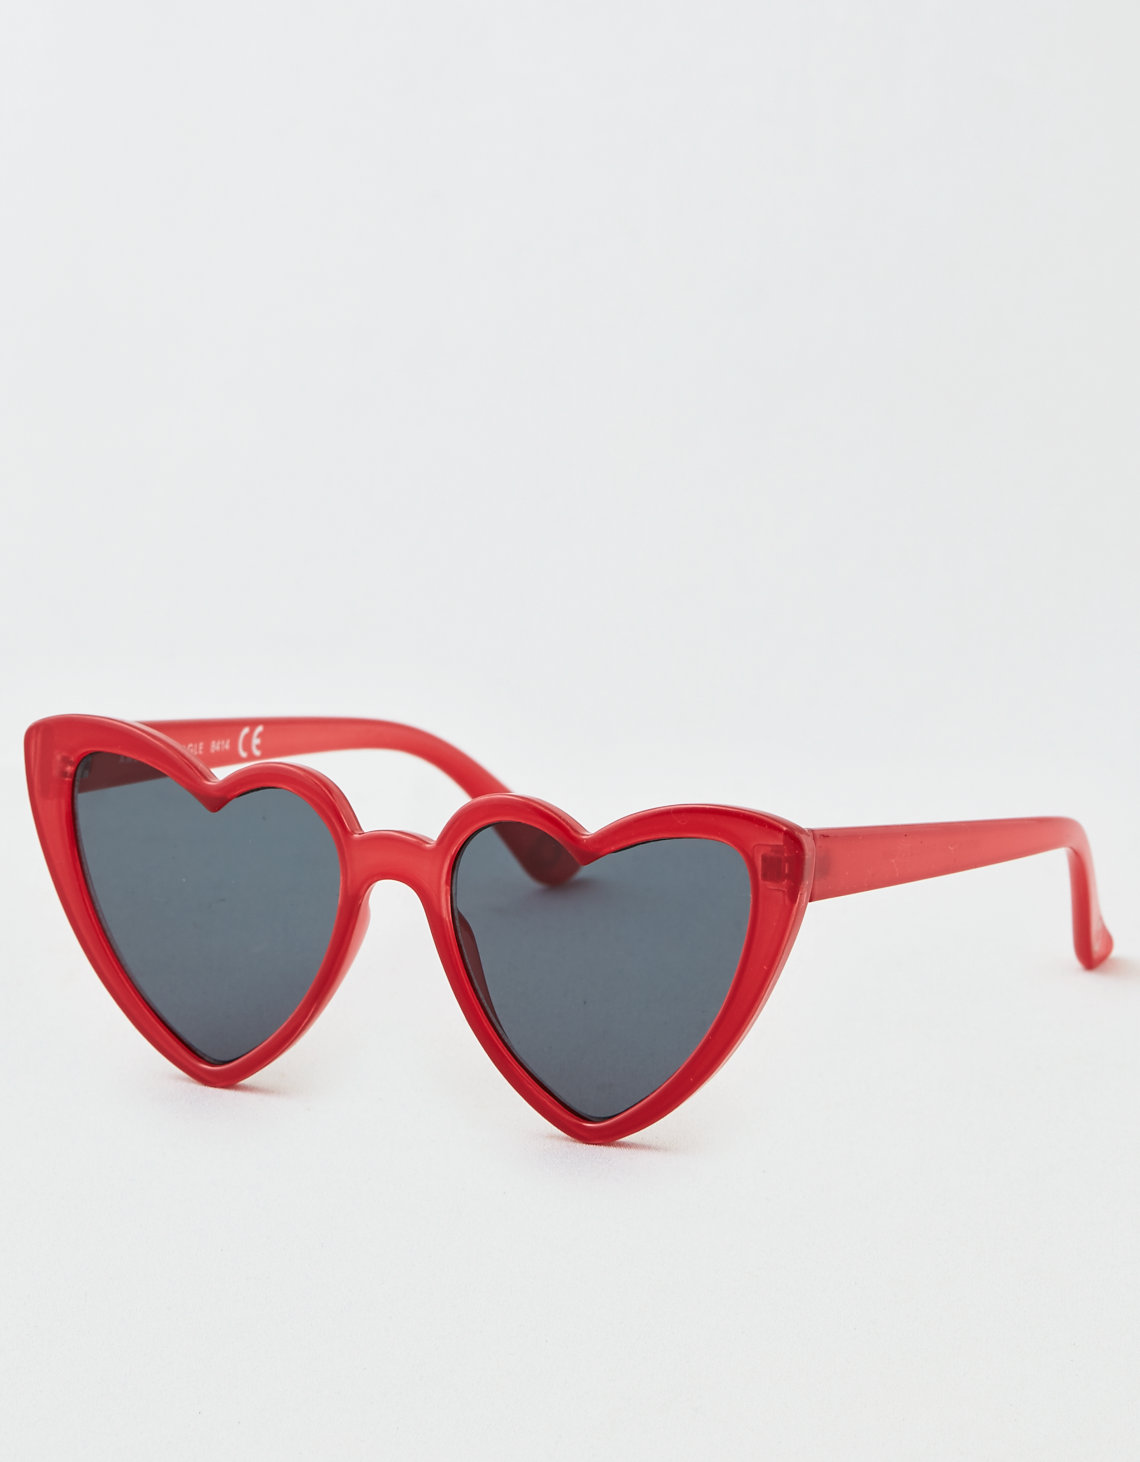 76cff153c6 Red Heart Sunglasses. Placeholder image. Product Image